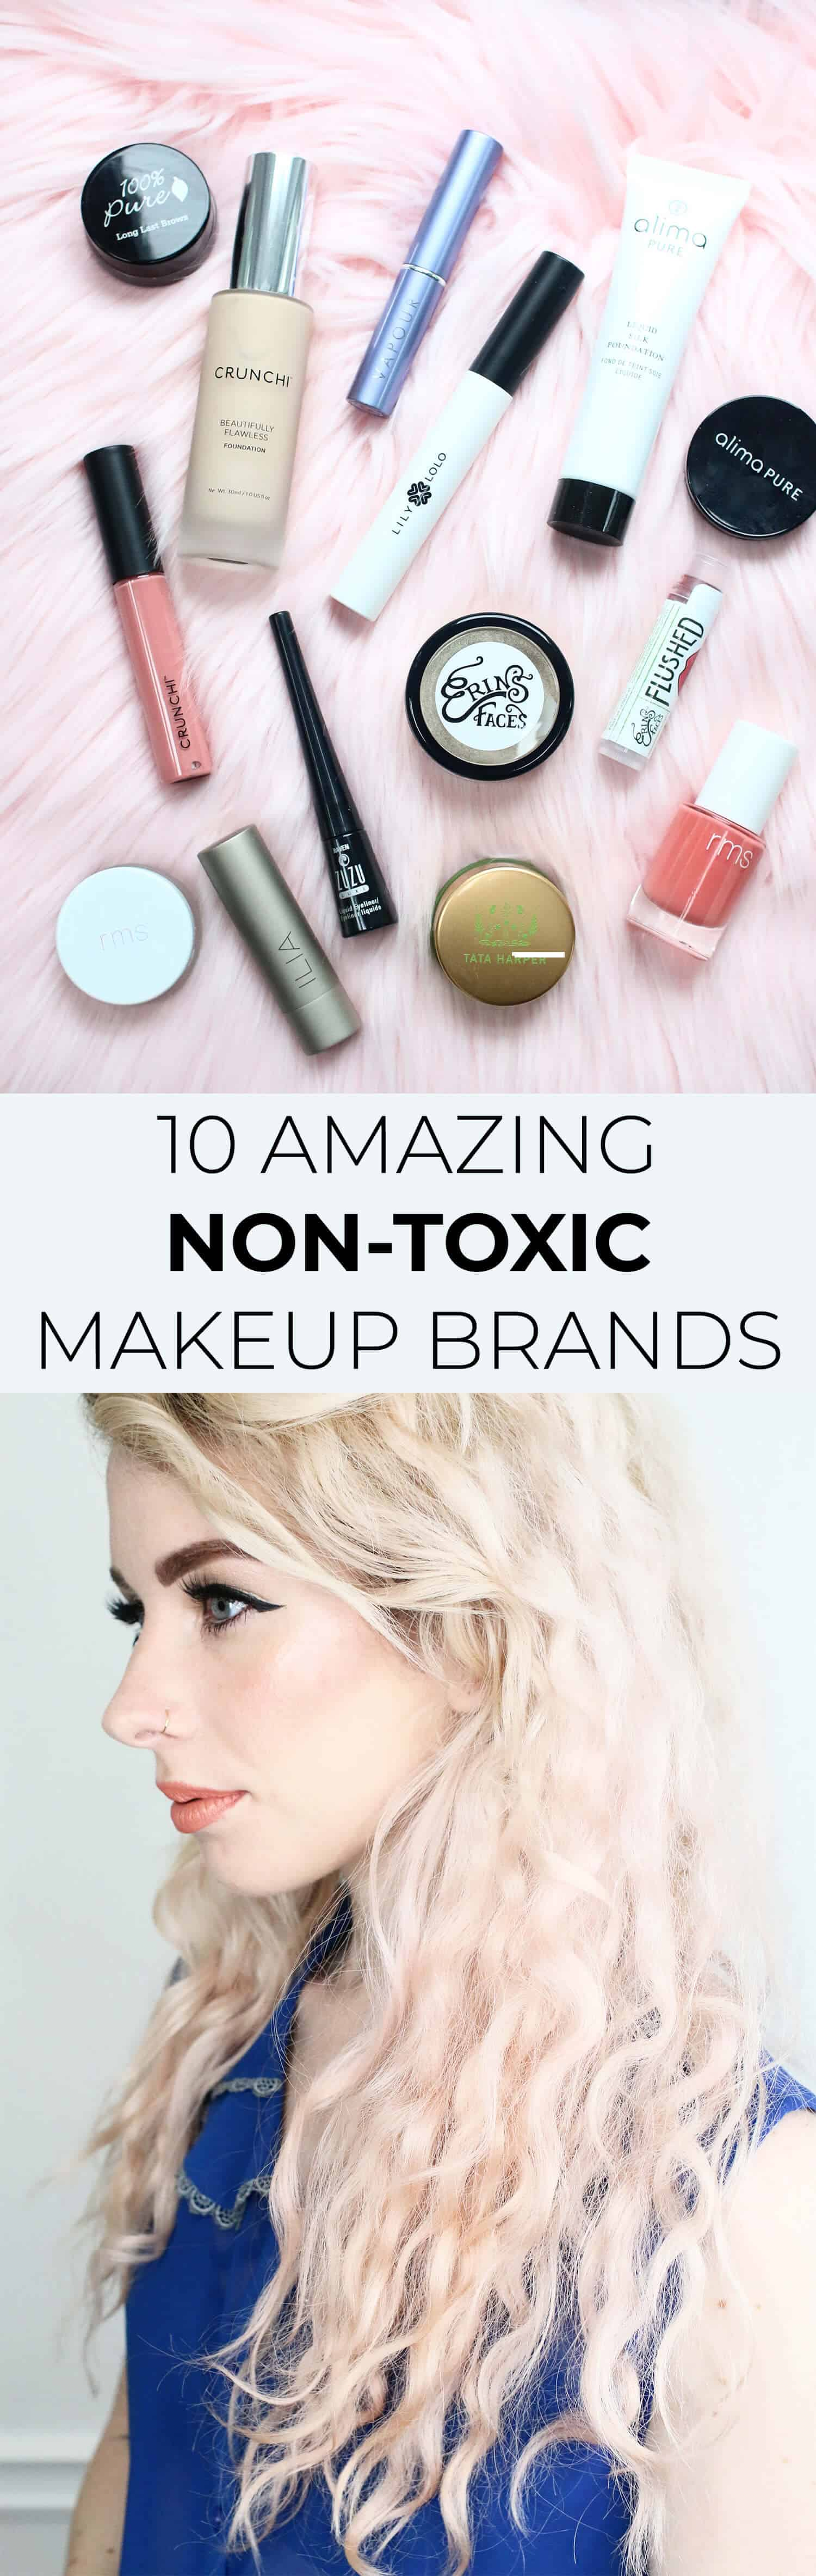 10 Nontoxic Makeup Brands To Try! - A Beautiful Mess